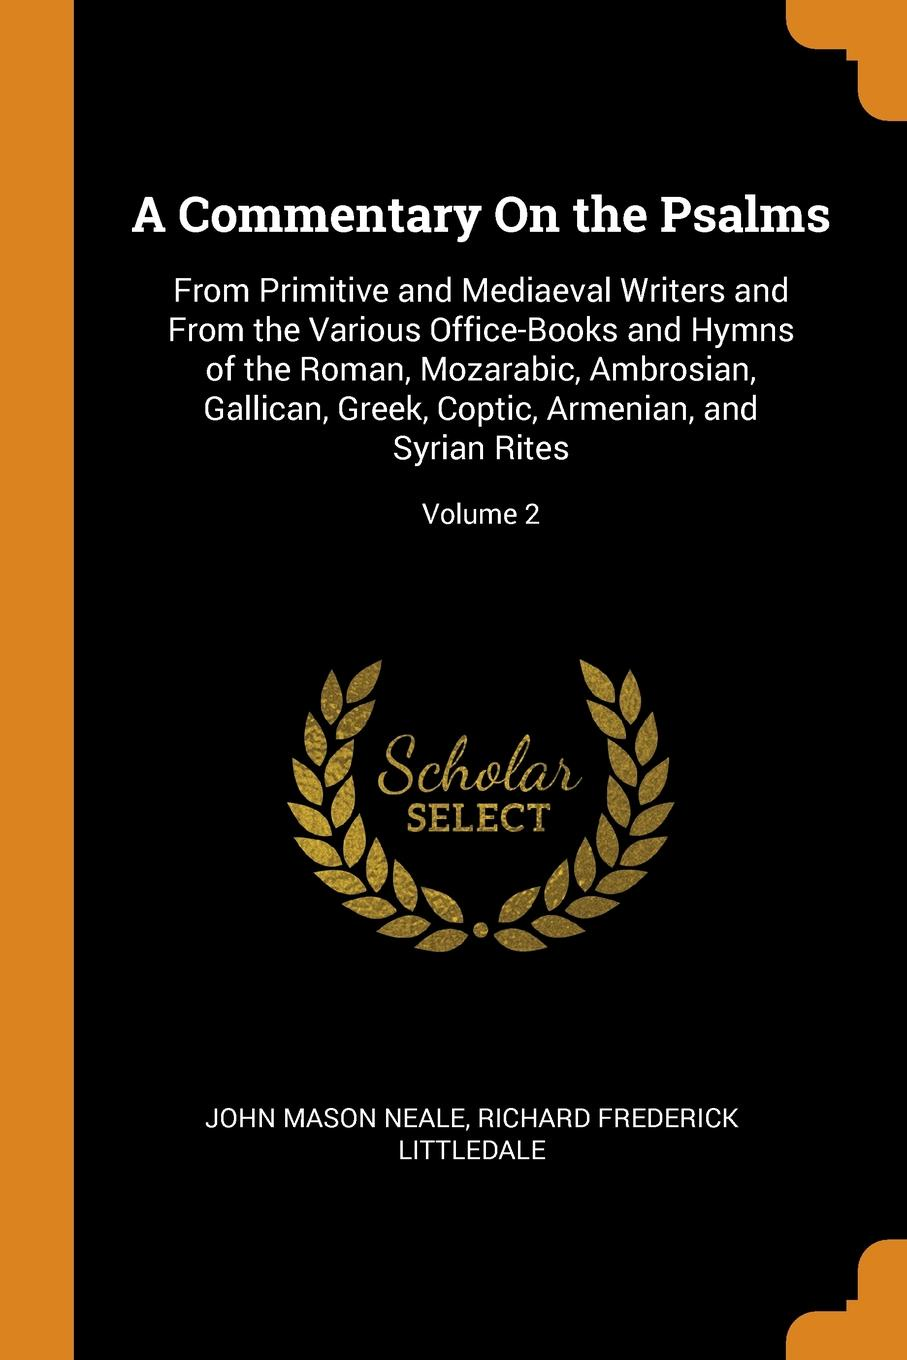 A-Commentary-On-the-Psalms-From-Primitive-and-Mediaeval-Writers-and-From-the-Various-Office-Books-and-Hymns-of-the-Roman-Mozarabic-Ambrosian-Gallican-